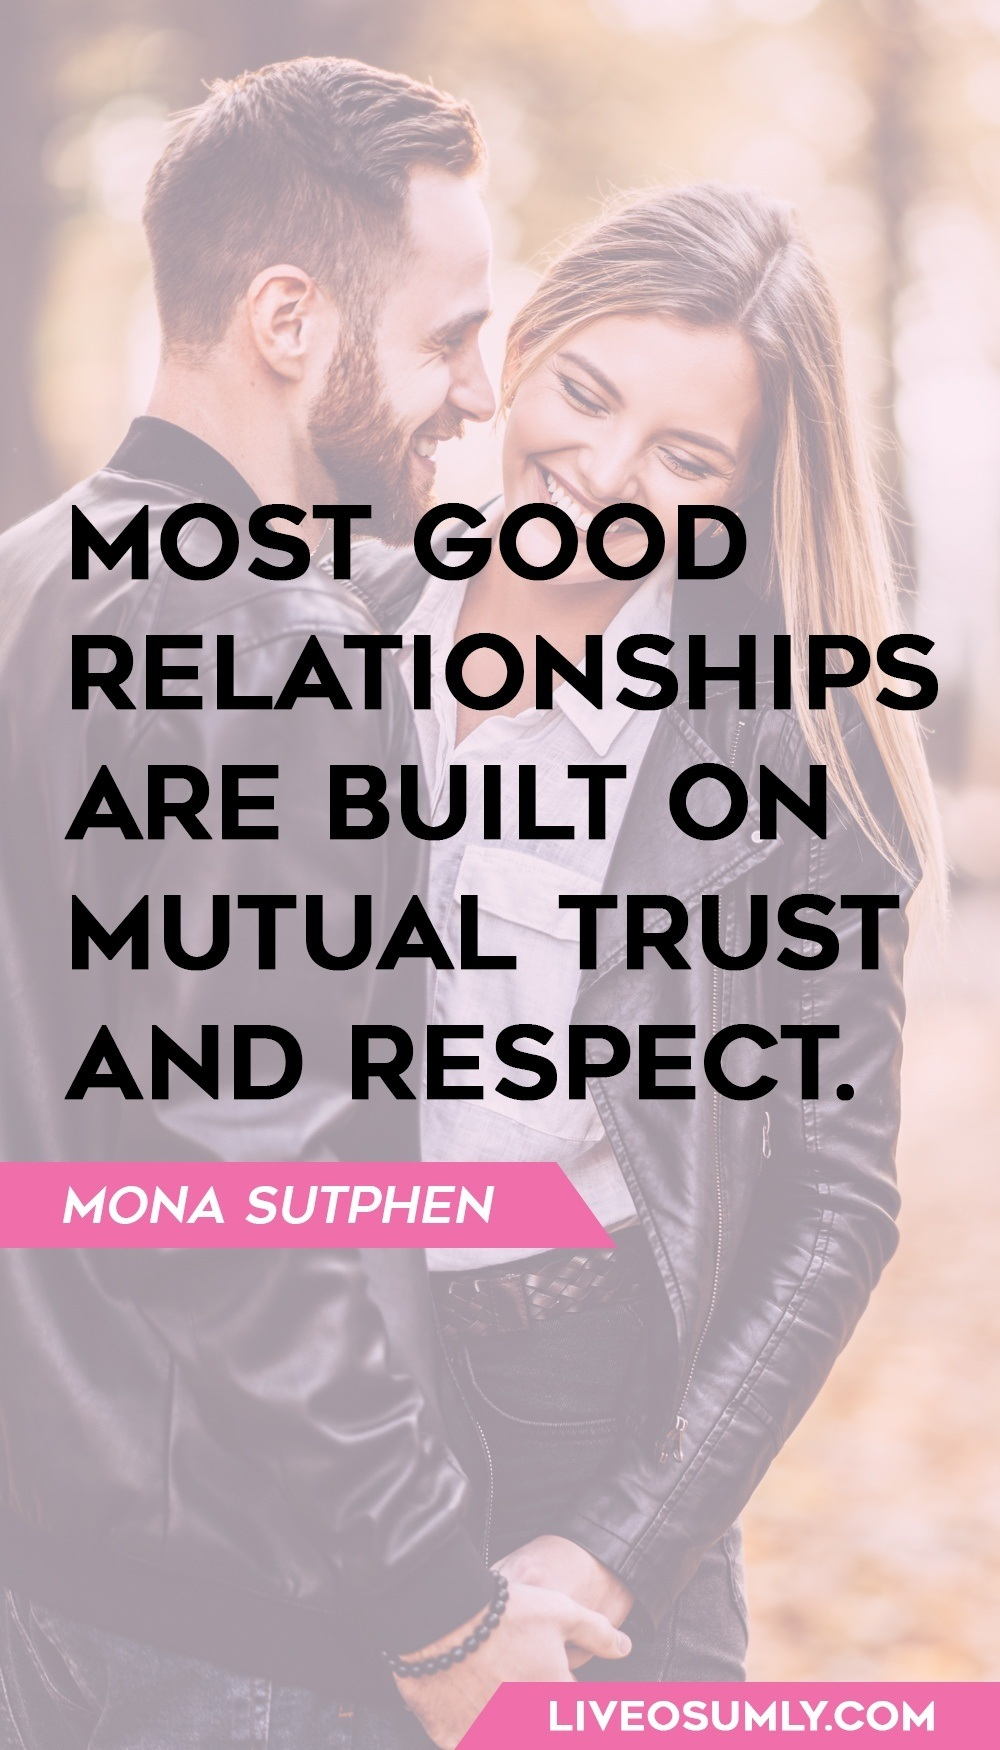 Mona Sutphen one of the quotes about trust in a relationship